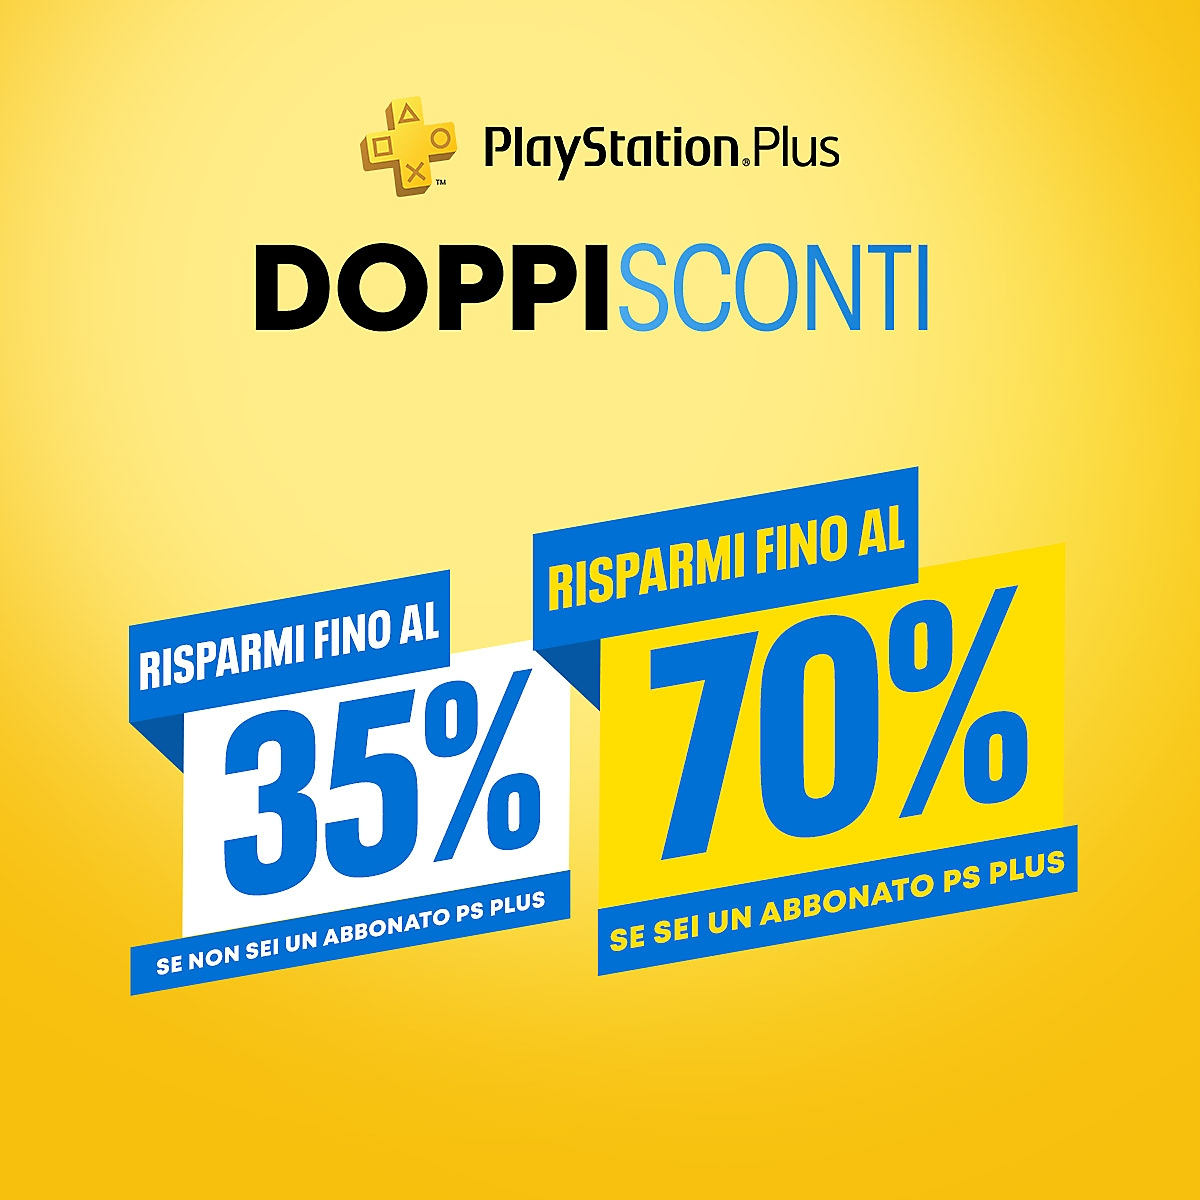 PlayStation Store - Doppi sconti PlayStation Plus